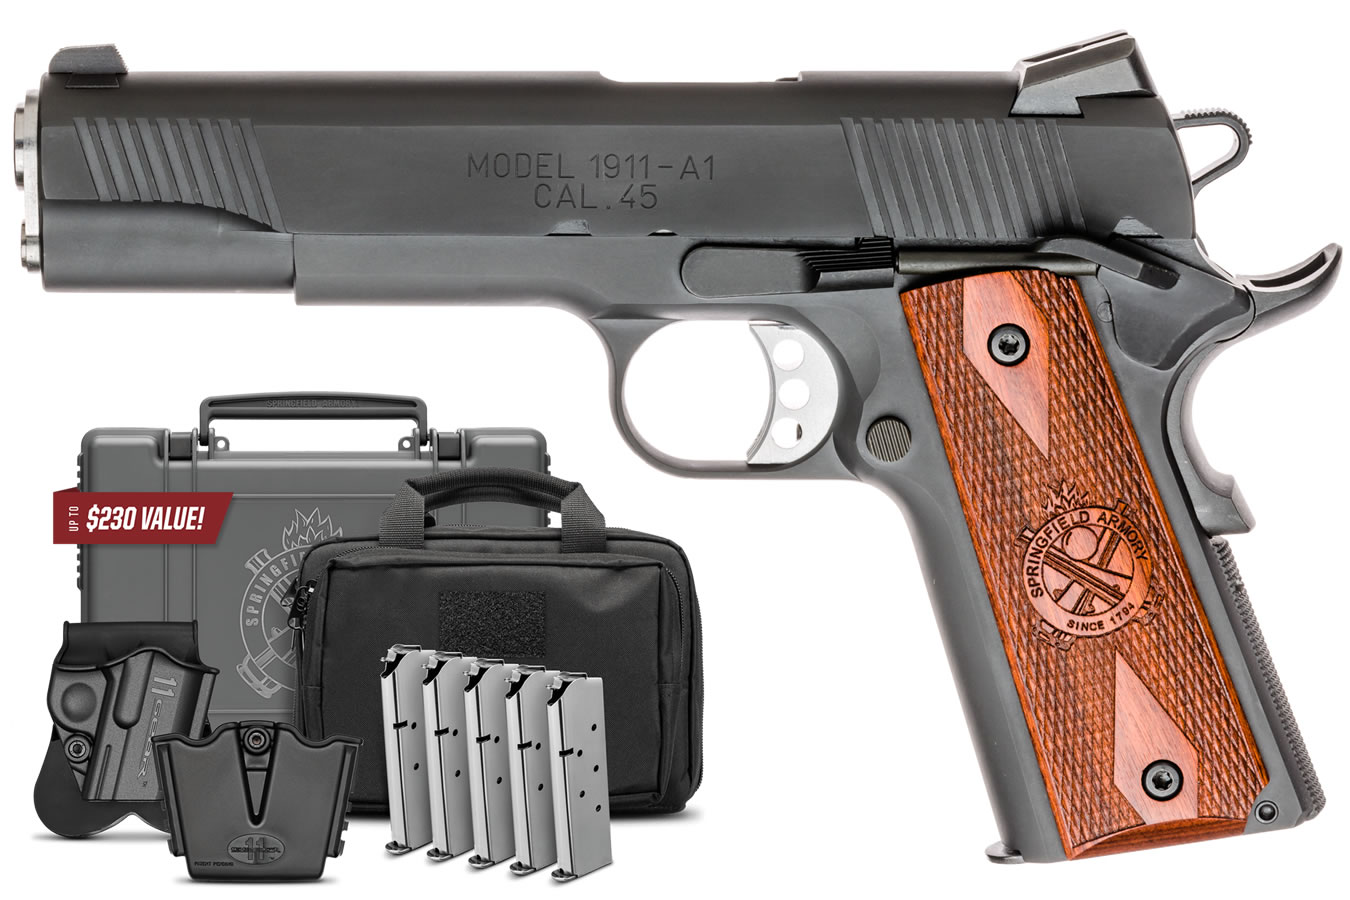 No. 9 Best Selling: SPRINGFIELD 1911 LOADED 45 ACP GEAR UP PACKAGE 5 IN BBL NIGHT SIGHTS PARKERIZED FINISH